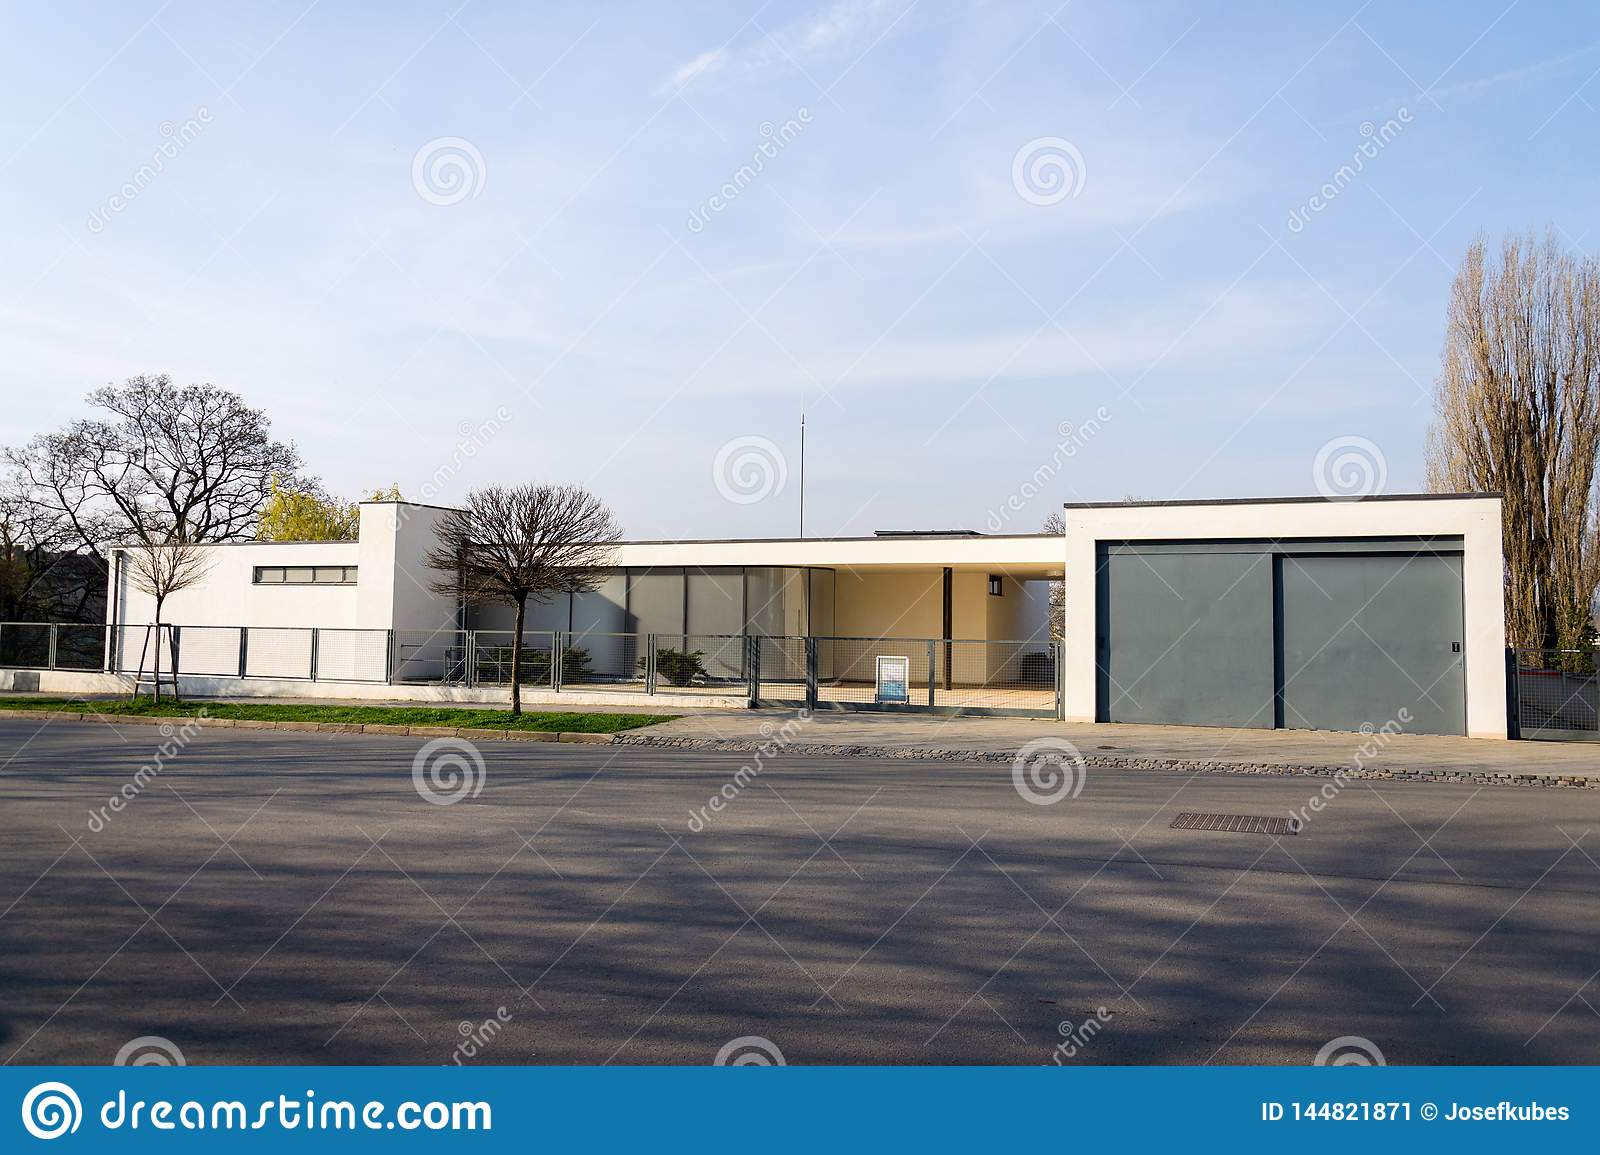 Villa Tugendhat Villa Tugendhat By Architect Ludwig Mies Van Der Rohe Built In